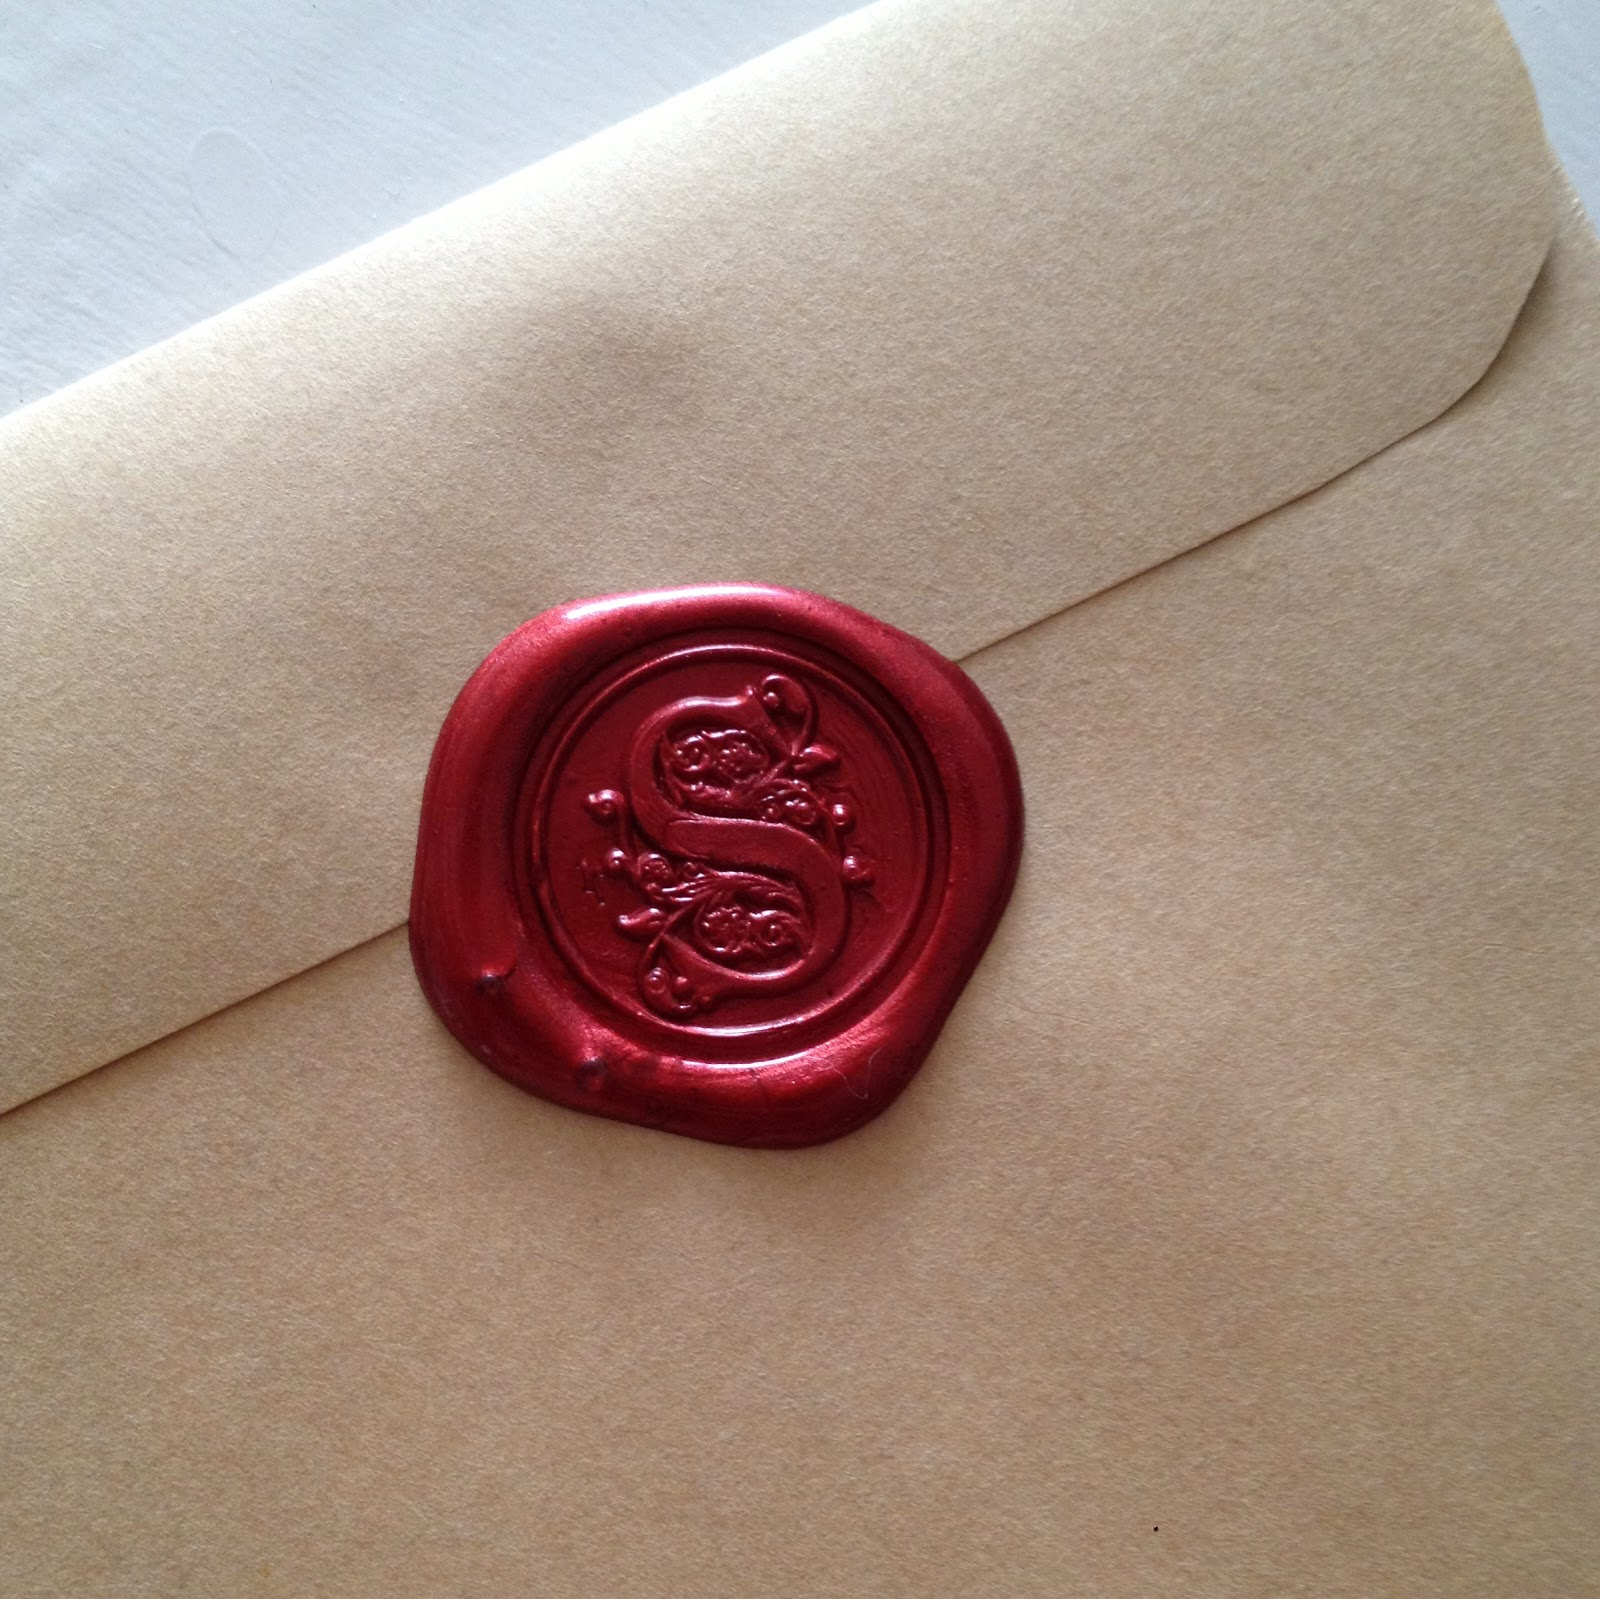 return of the stamp gameplay stonehearth discourse With wax letter seal